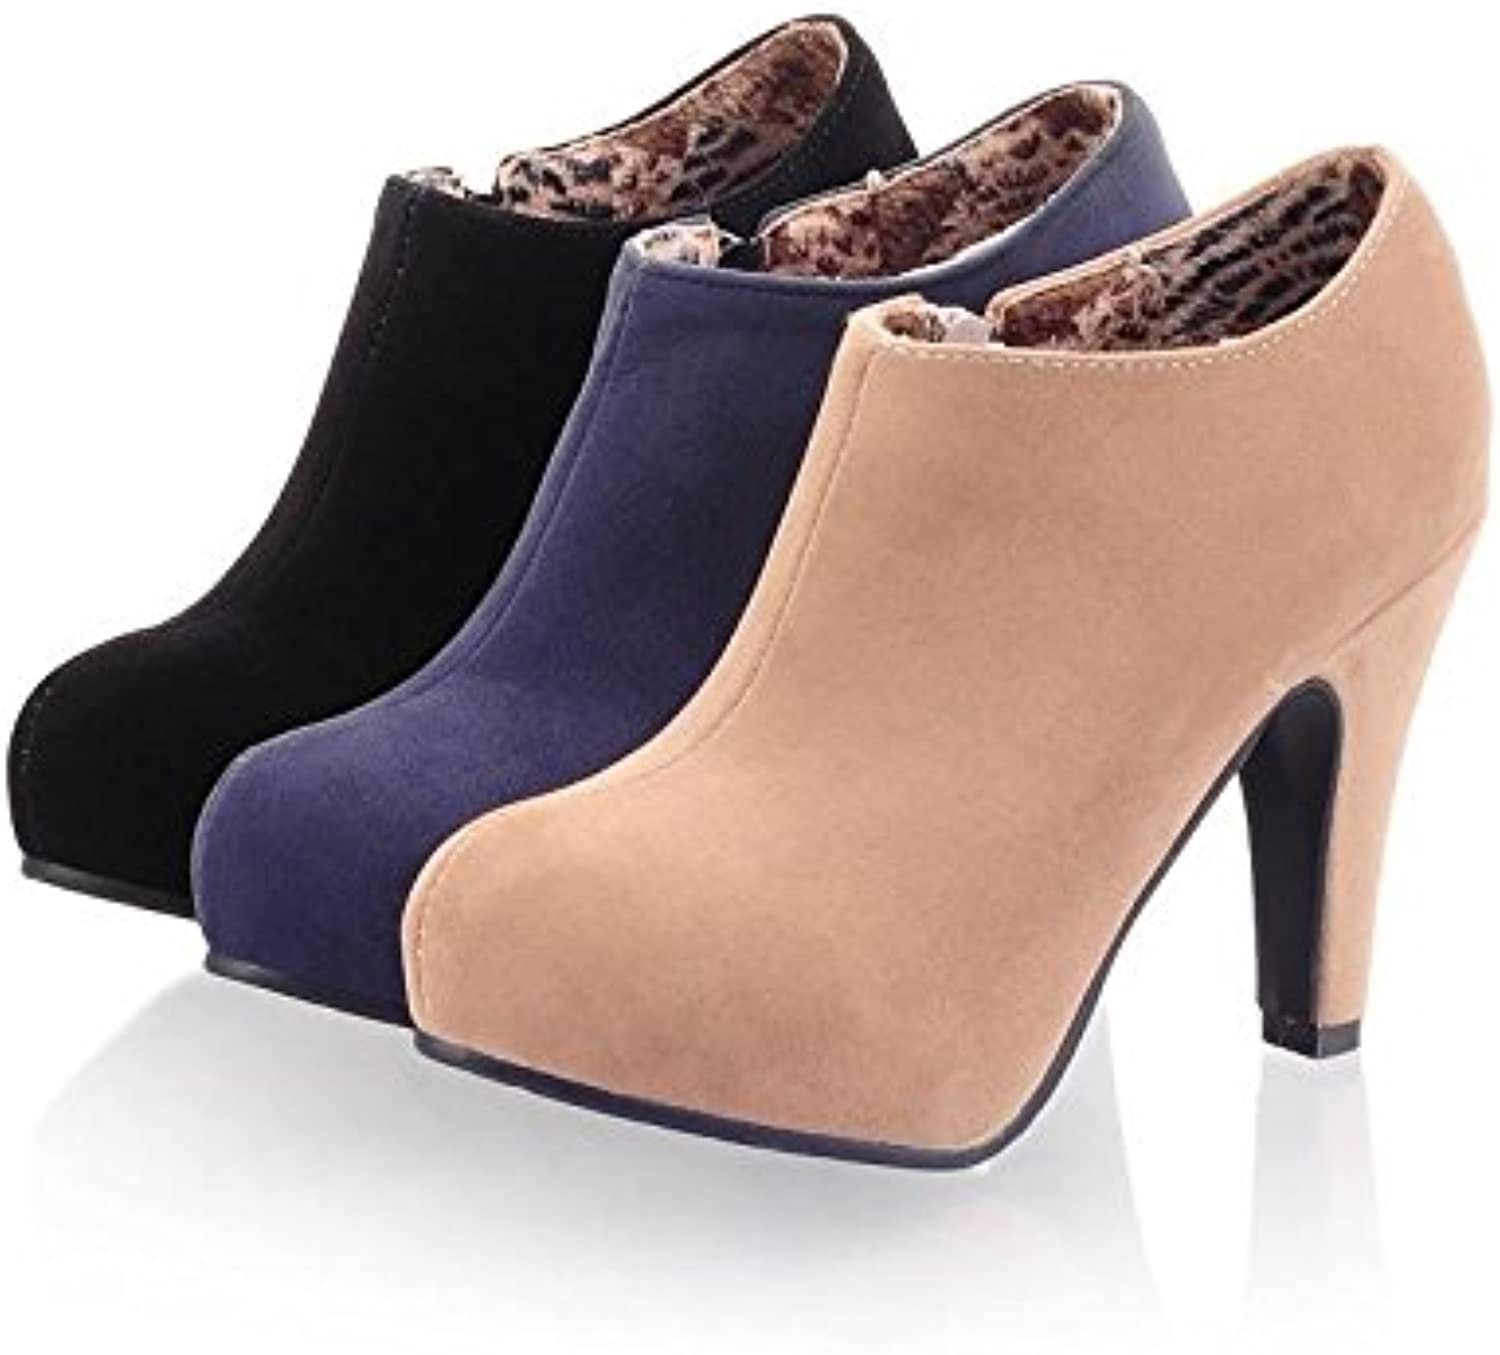 New Fashion Autumn Spring Women Ankle Boots Thin Heels Zip Black Apricot bluee Designer shoes